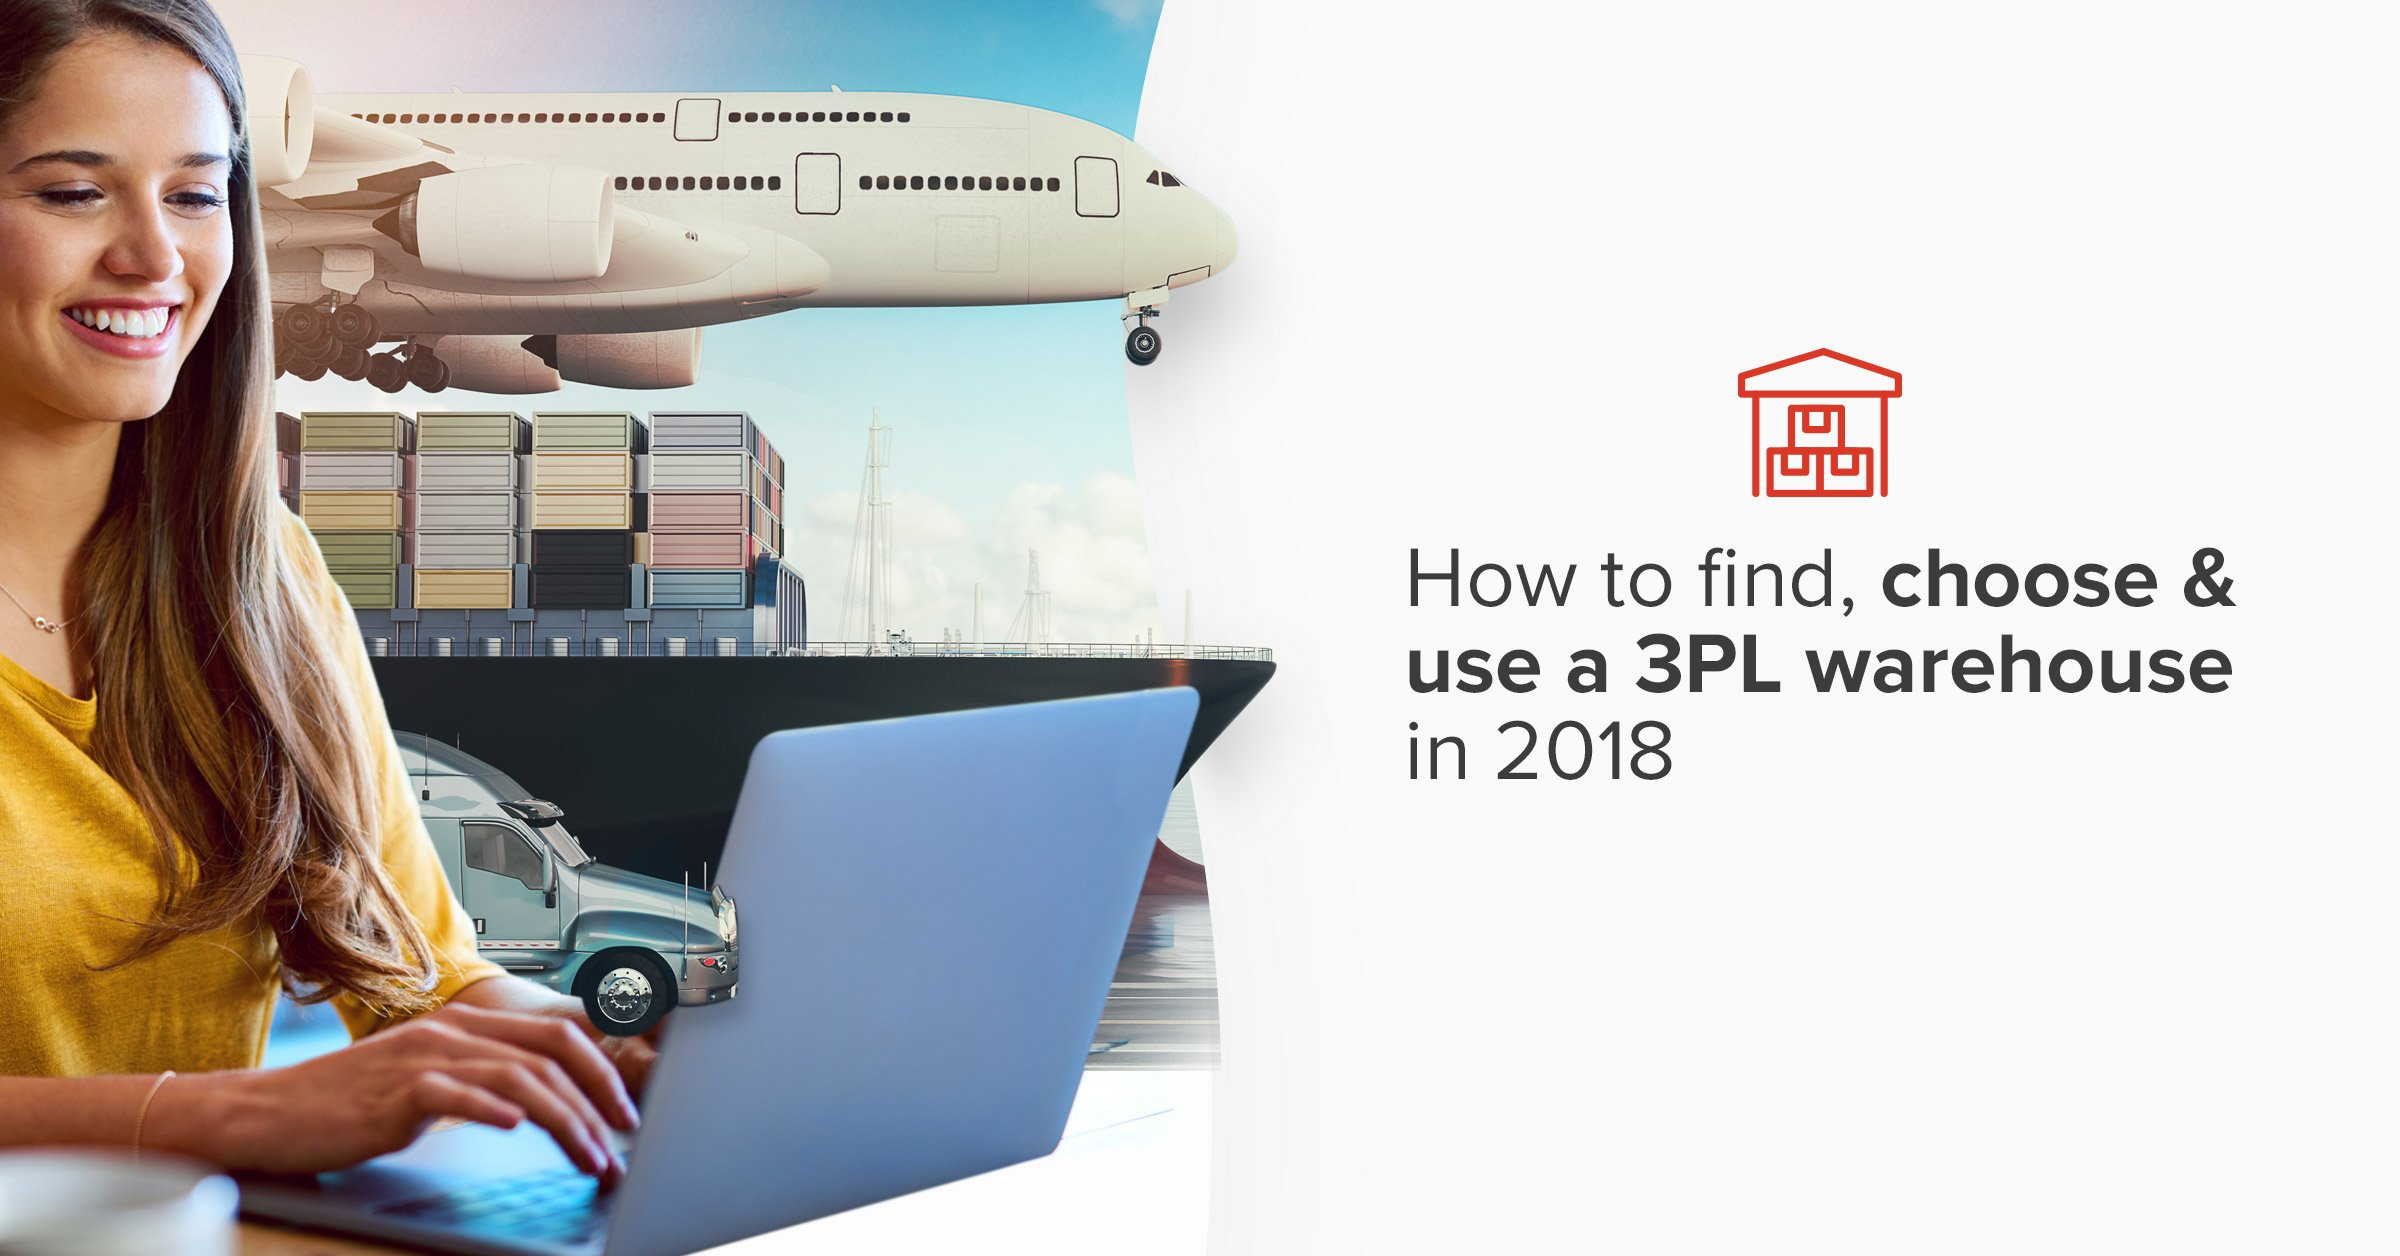 How to find, choose & use a 3PL warehouse in 2018